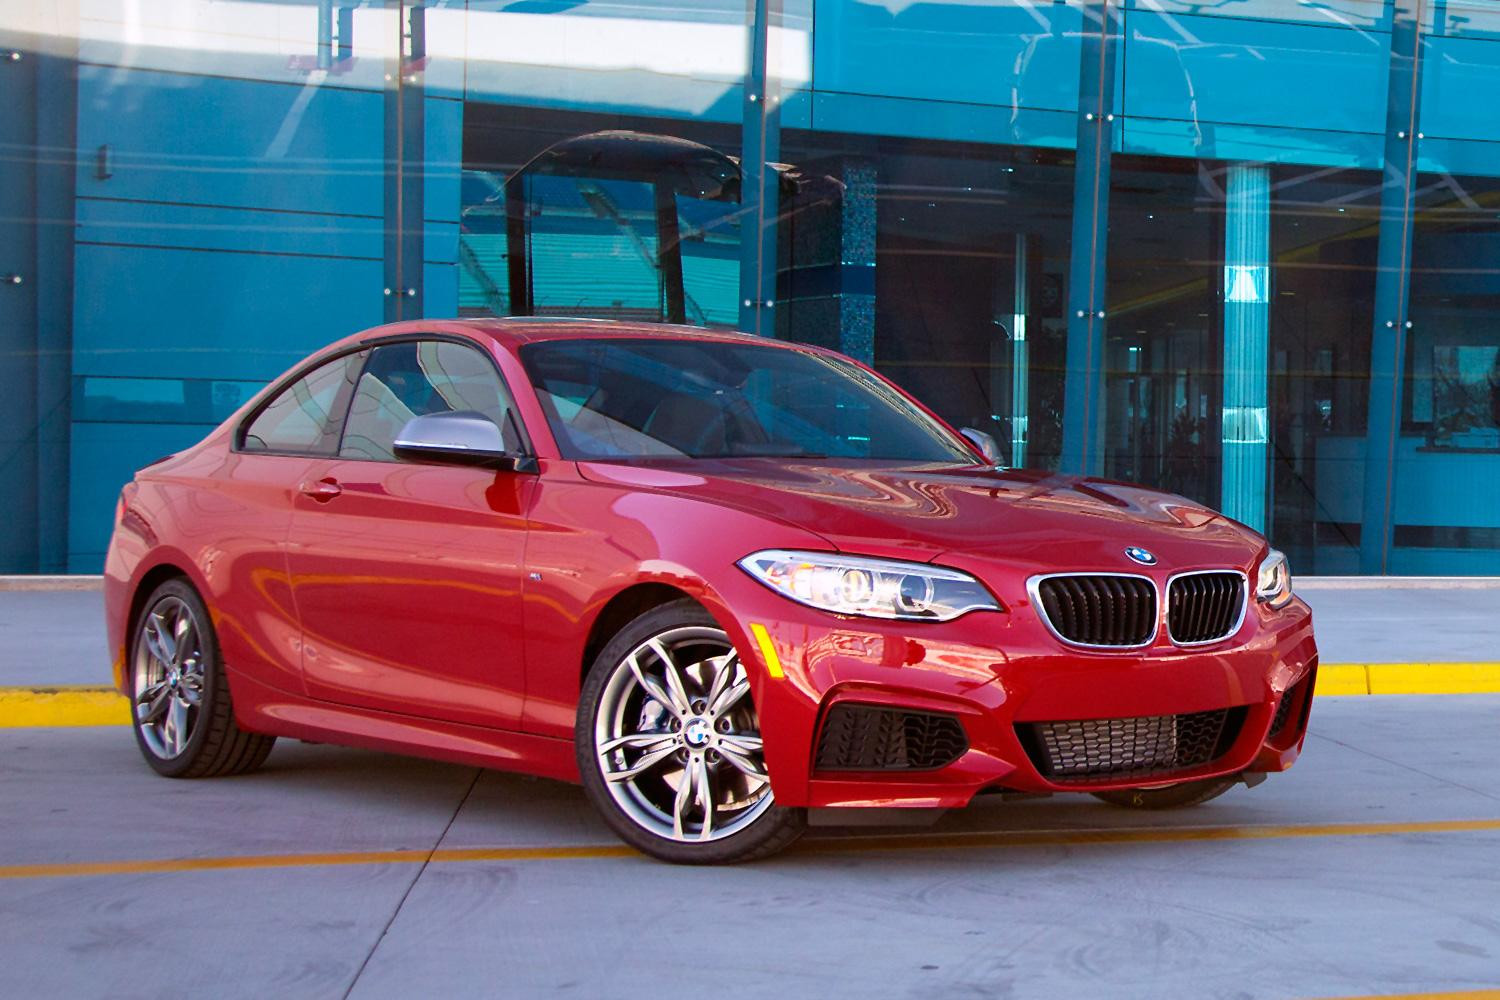 Images of 2014 BMW M235i Coupe | 1500x1000